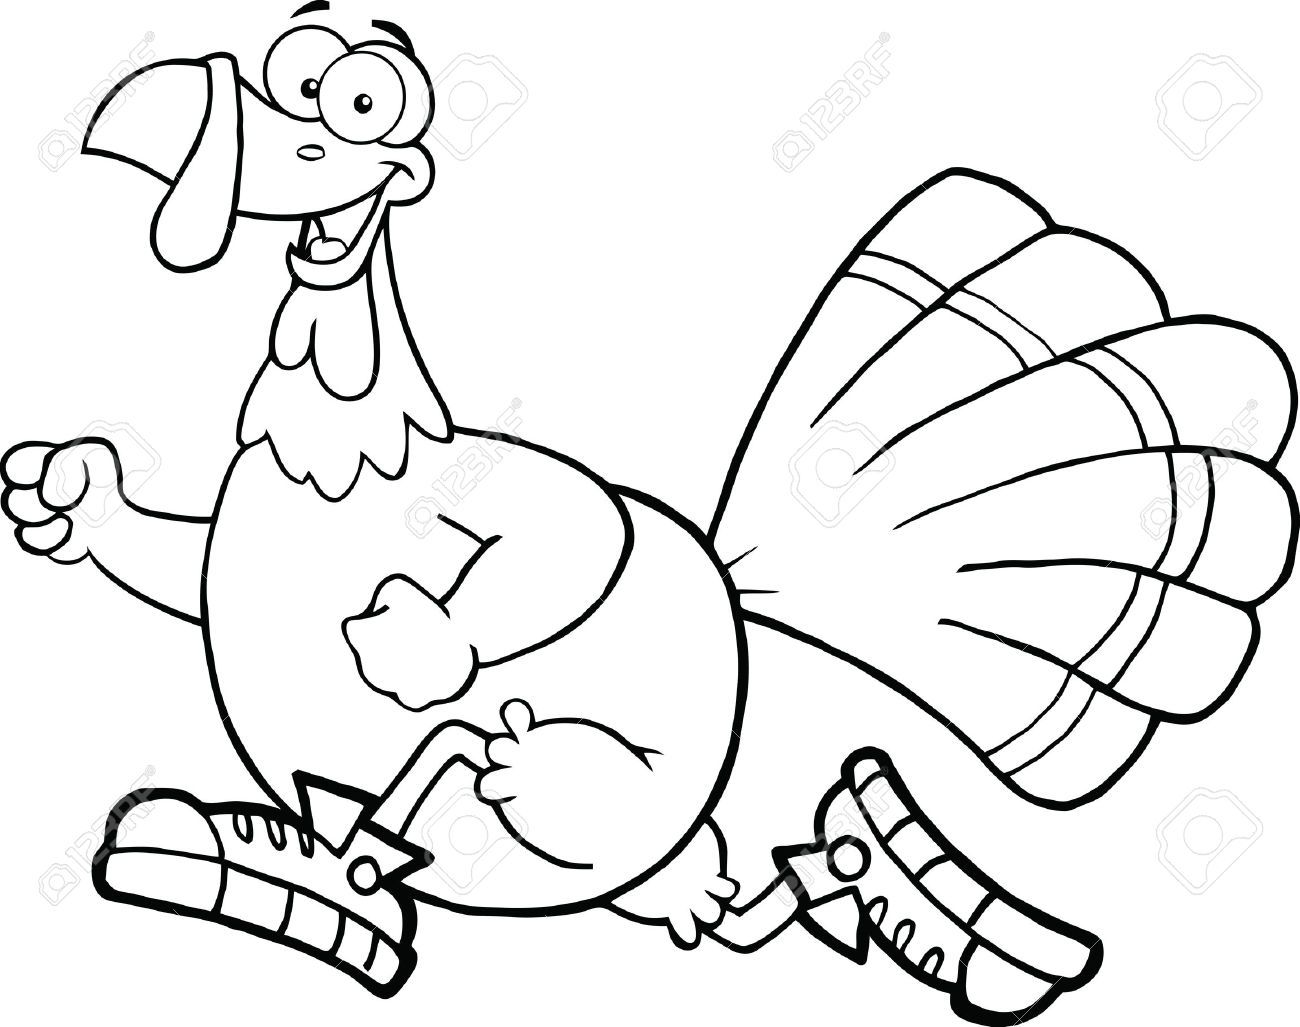 50++ Clipart black and white turkey ideas in 2021